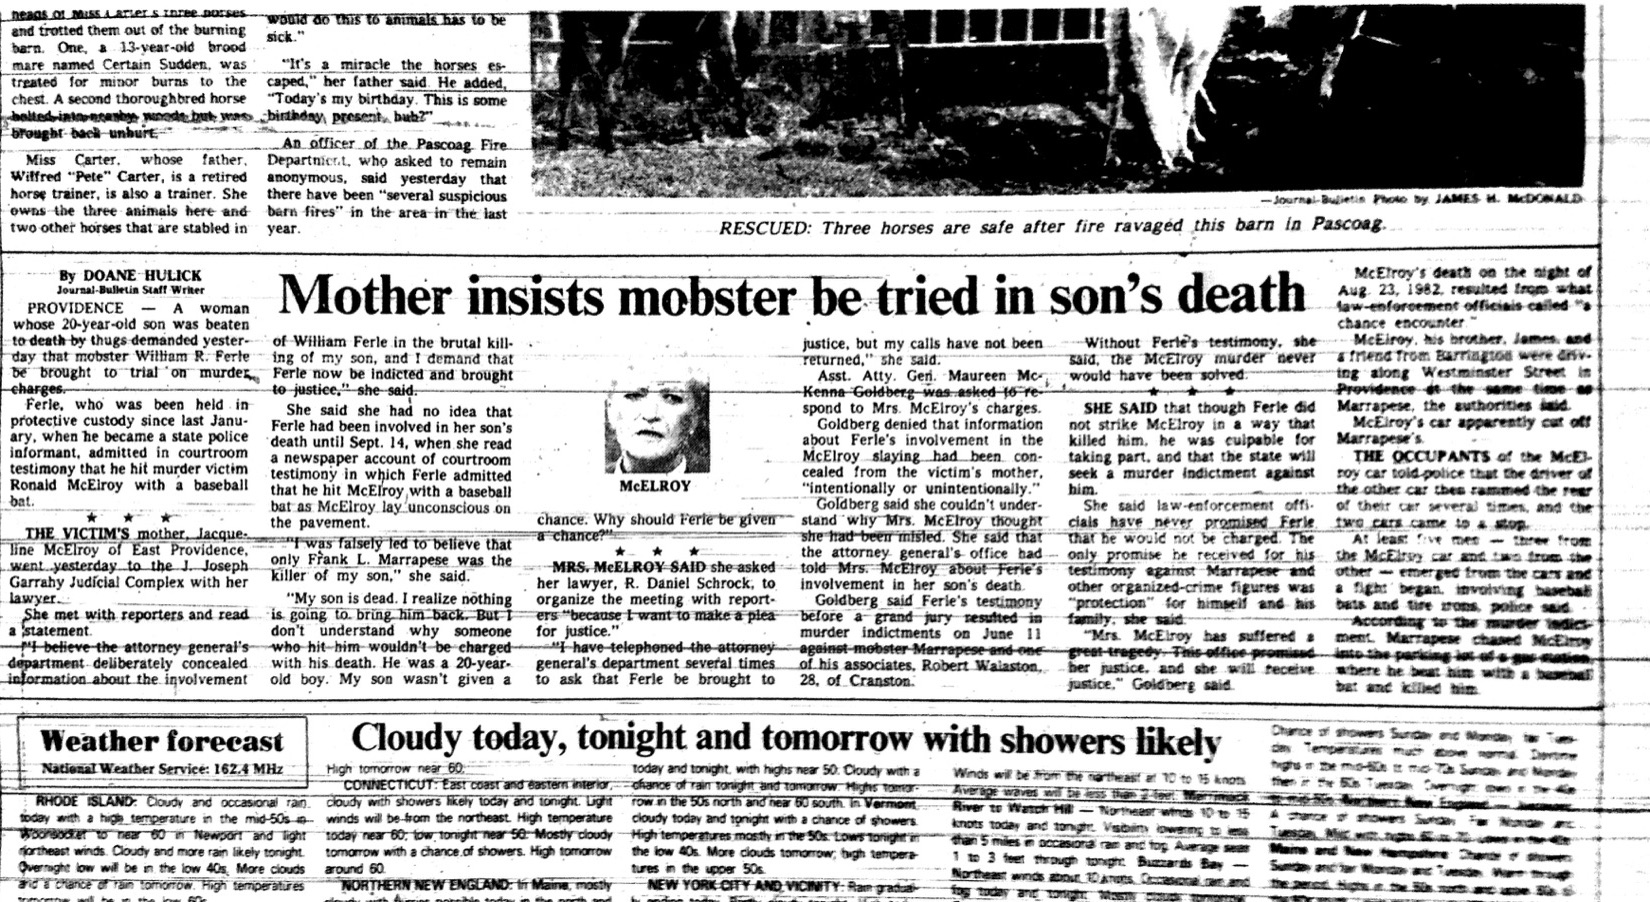 """Ronald McElroy's mother told the  Providence Journal  she had no idea that William Ferle had been involved in her son's death until a few months after Bobo Marrapese's indictment, when she read a newspaper account of courtroom testimony.""""I believe the attorney general's department deliberately concealed information about the involvement of William Ferle in the brutal killing of my son, and I demand that Ferle now be indicted and brought to justice,"""" she said.  Courtesy of The Providence Journal."""